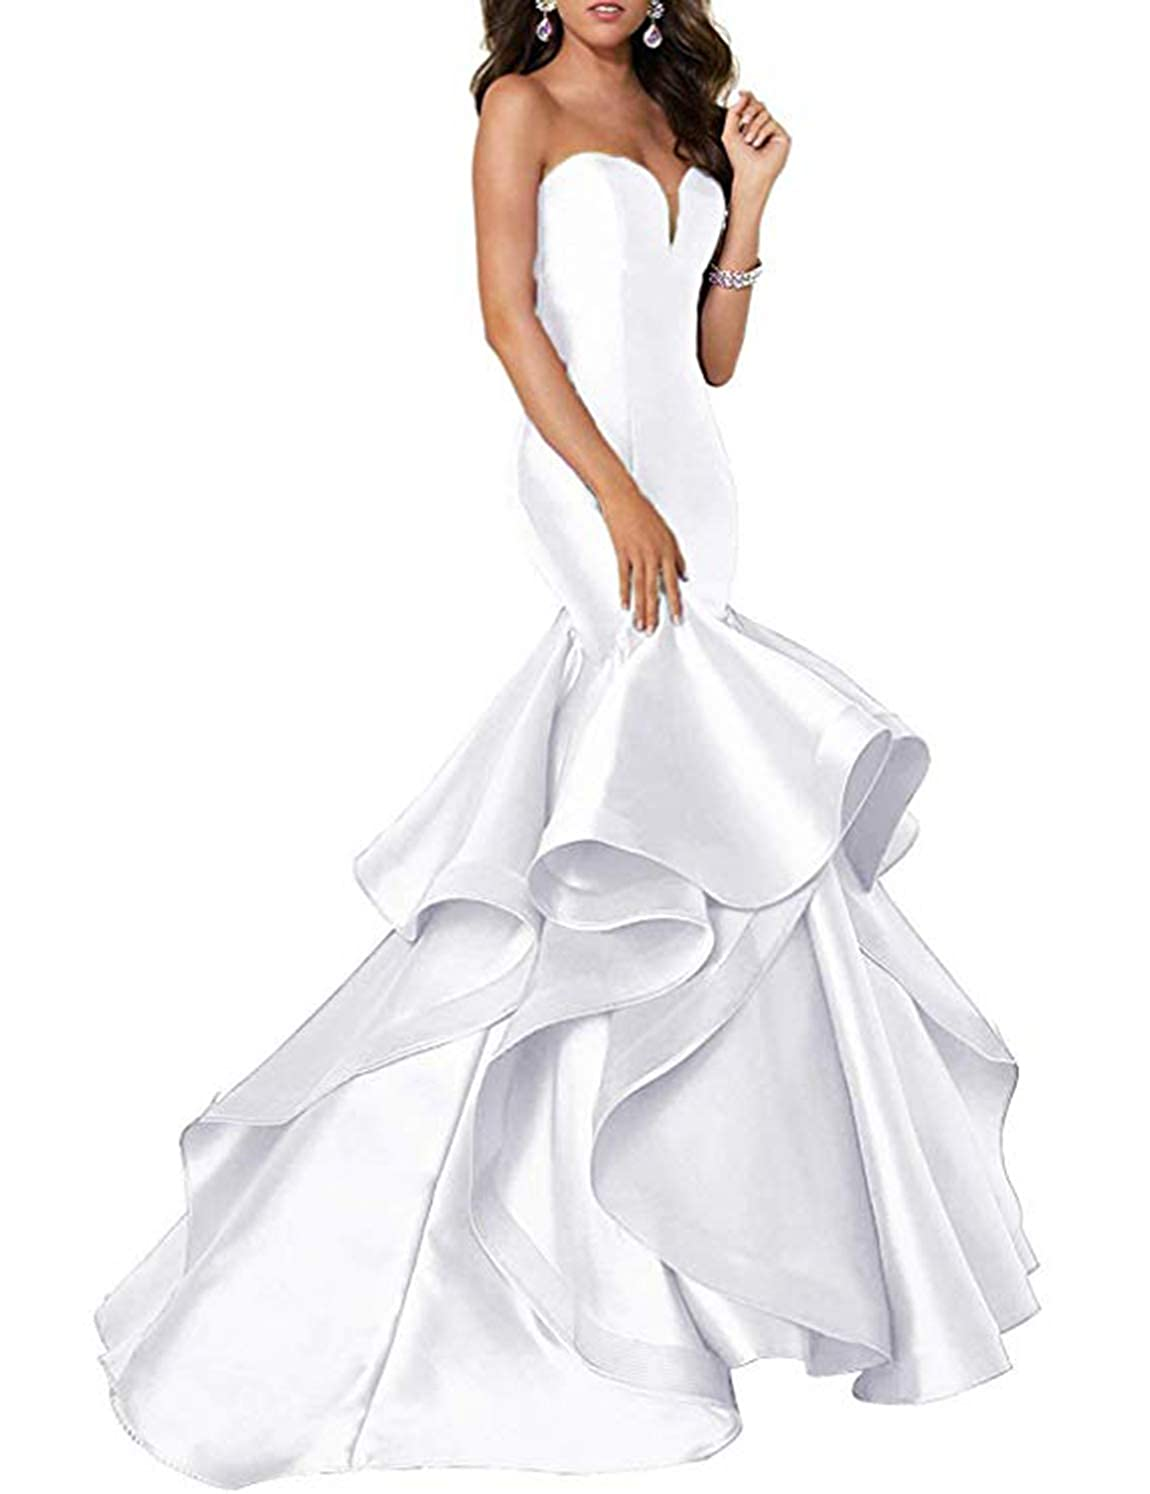 Ivory Scarisee Women's Sweetheart Mermaid Prom Evening Party Dresses Tiered FormalSA51